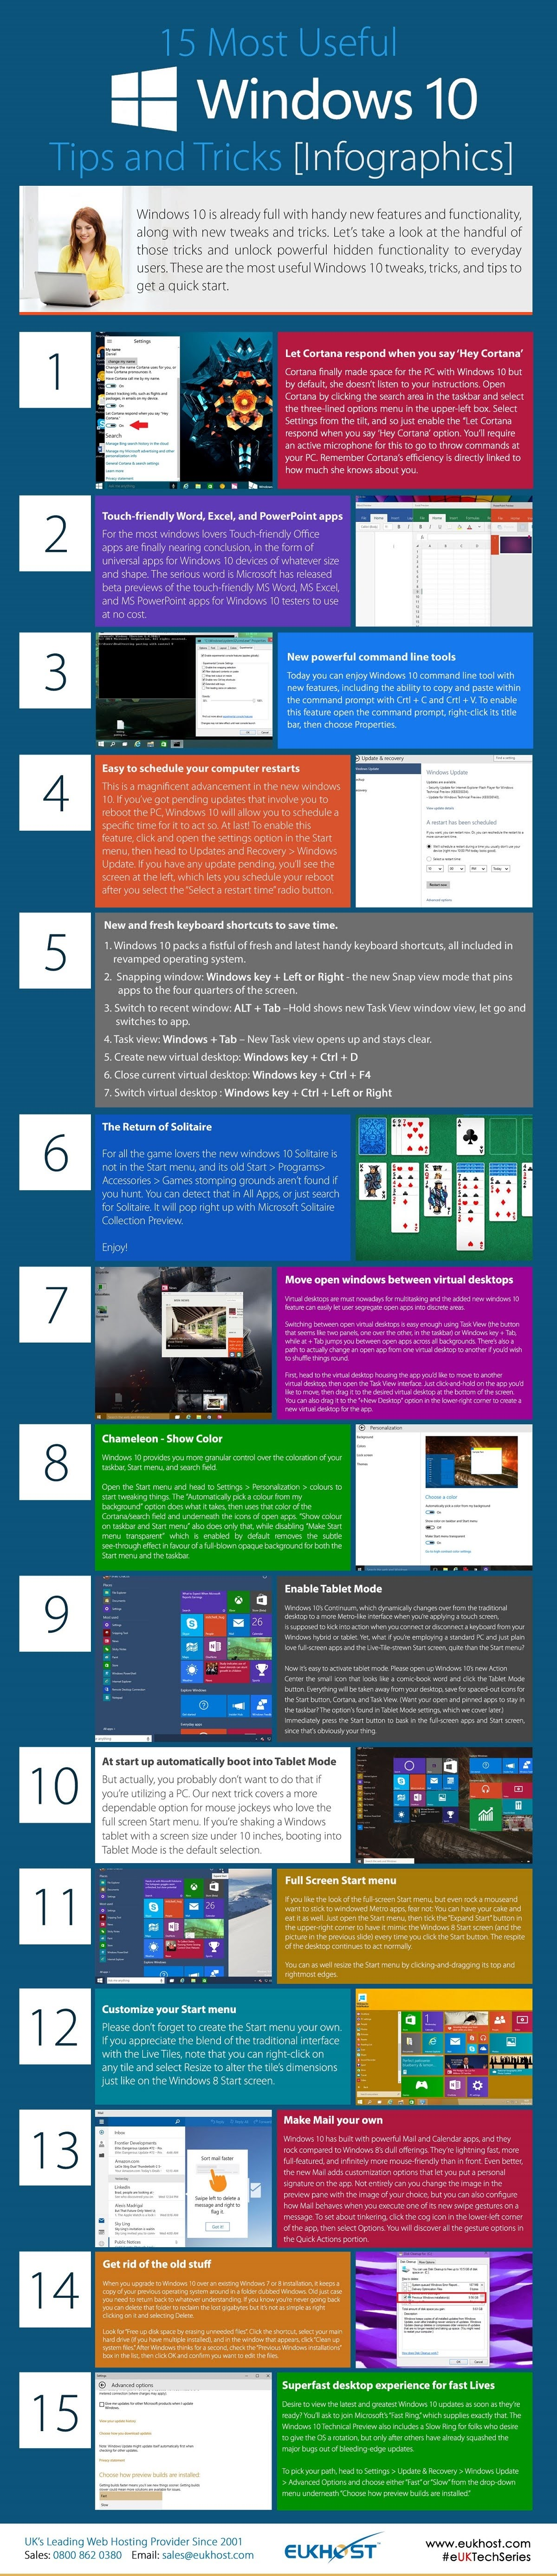 15-most-useful-windows-10-tips-and-tricks-infographic